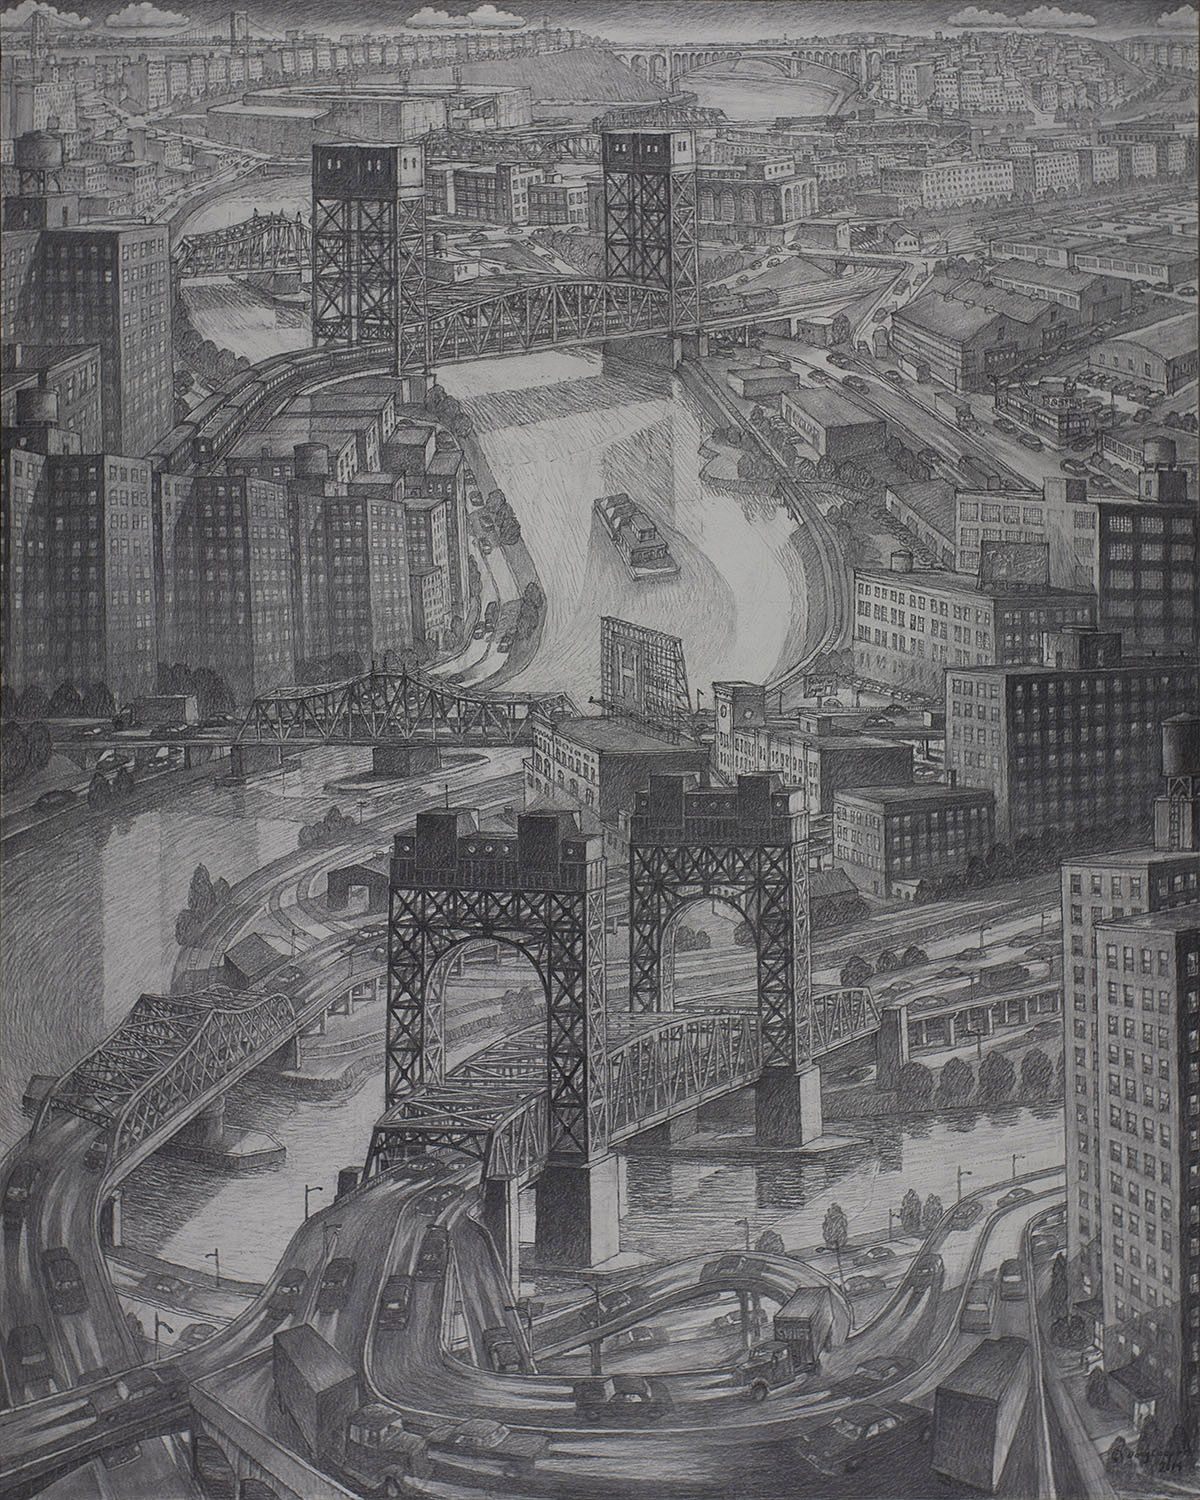 """Image of Douglas Cooper's """"Harlem River Bridges,"""" Charcoal on paper, mounted on board, 60 by 48 inches, created in 2014."""